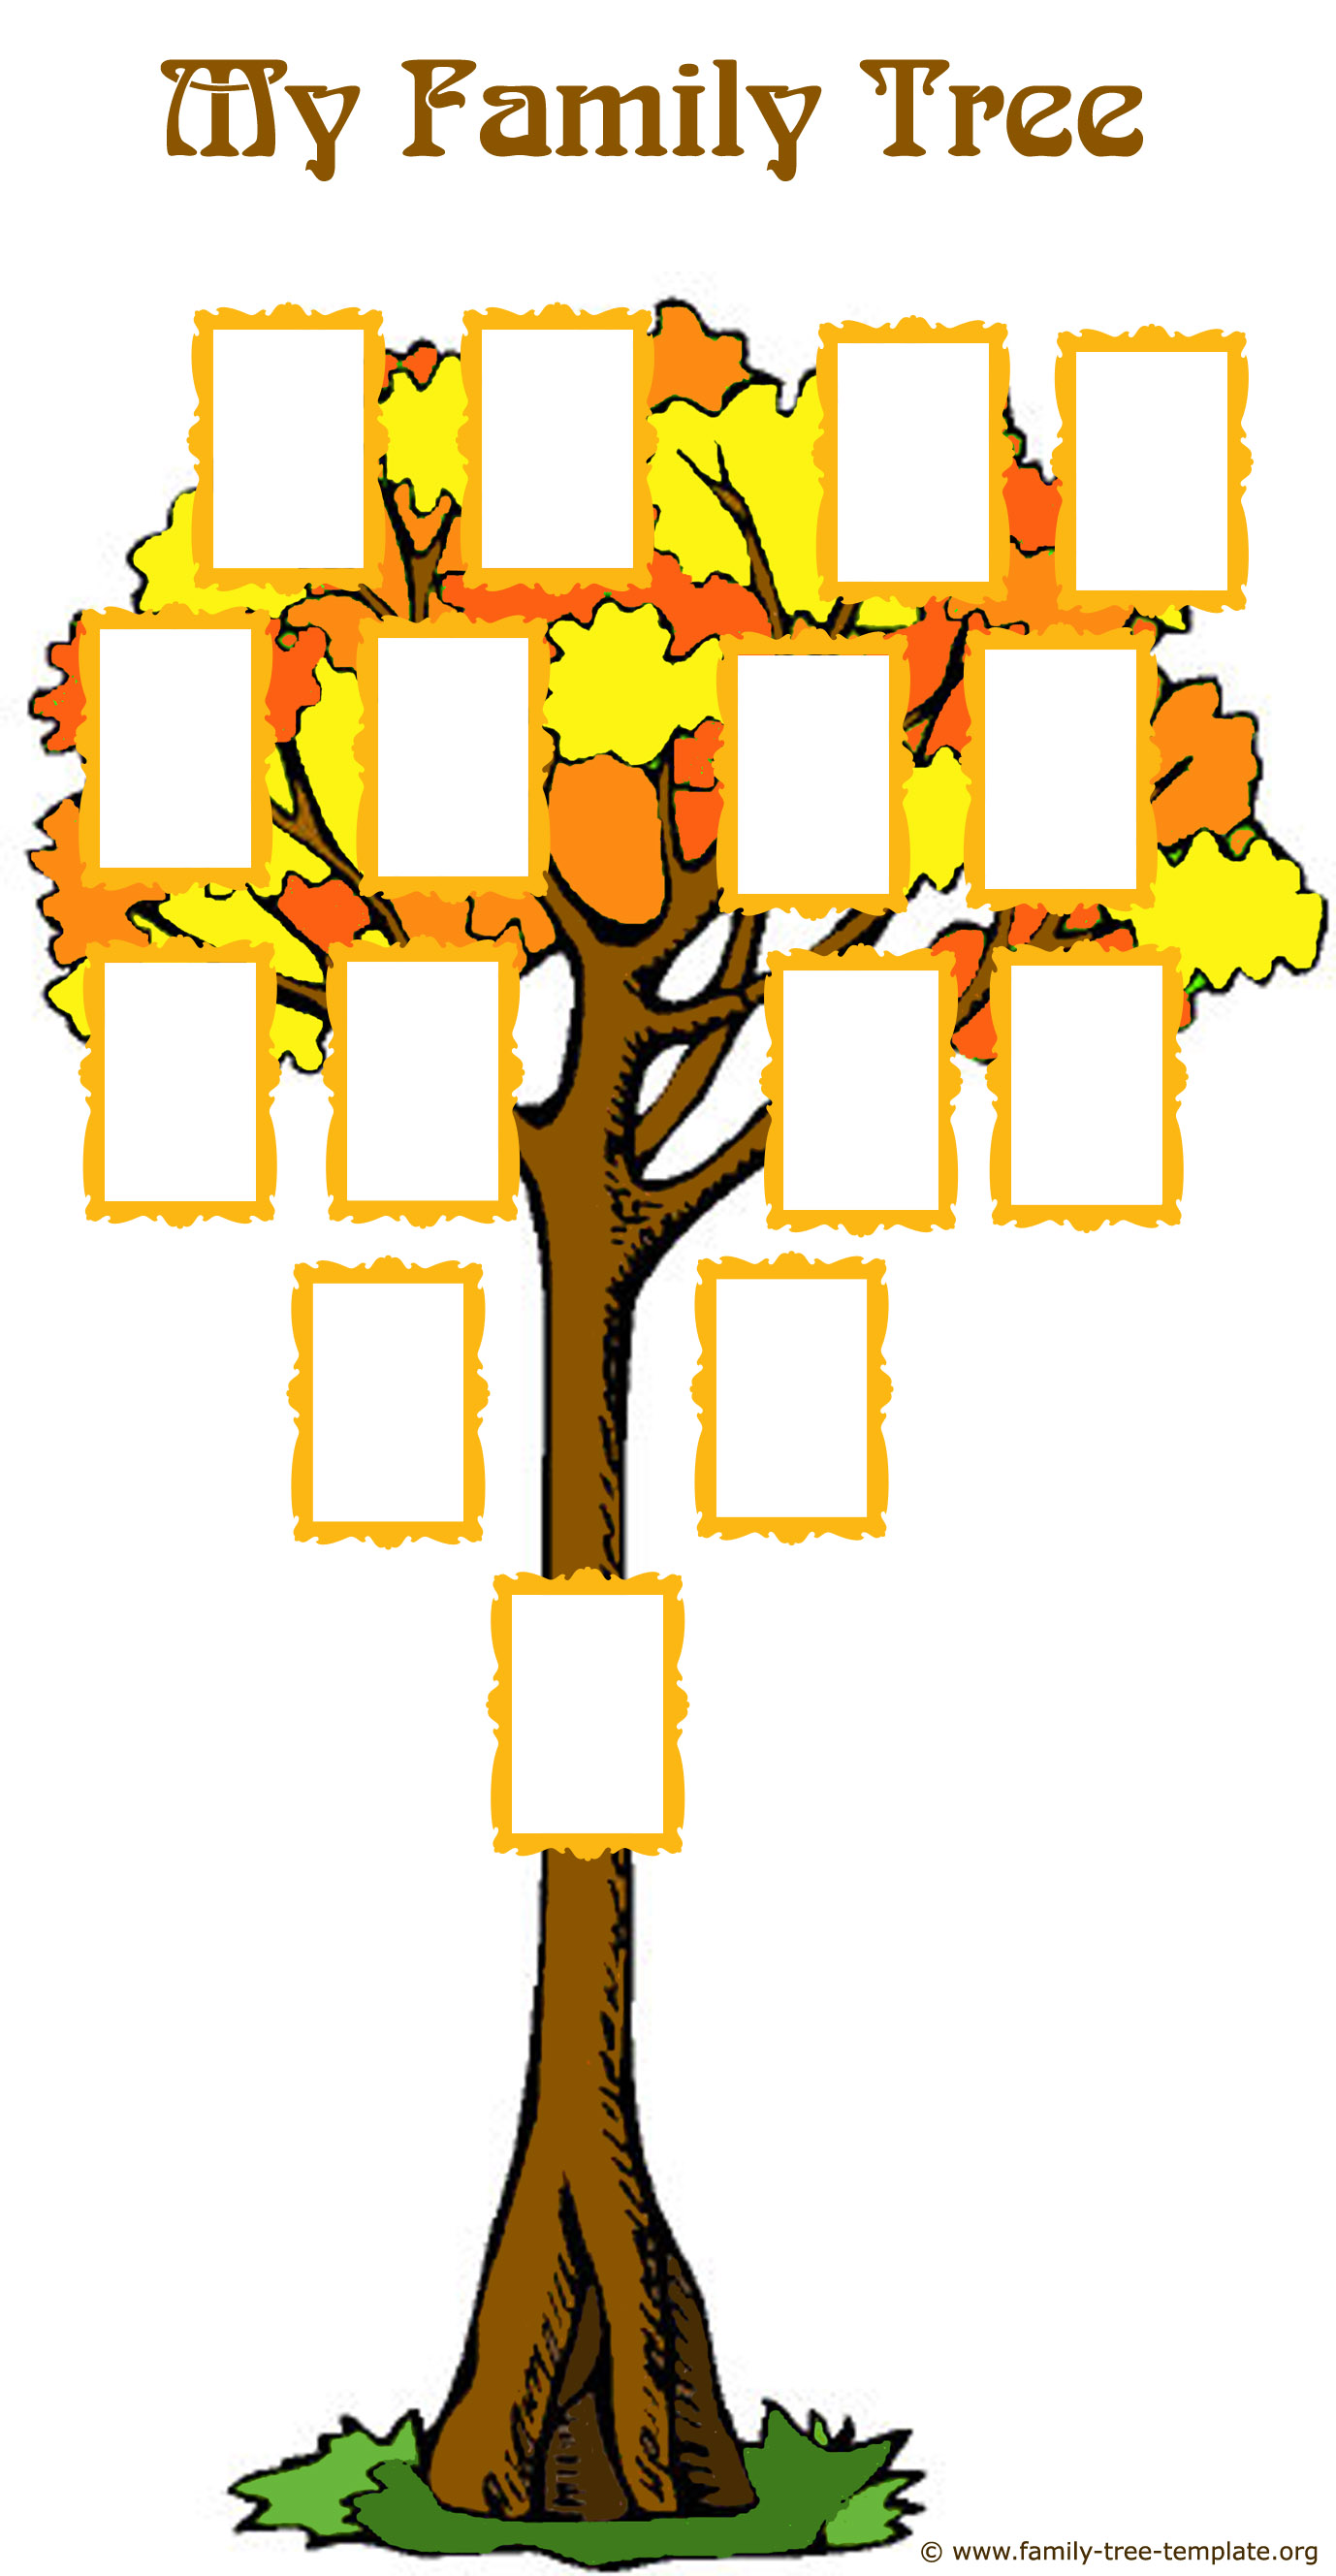 genealogy templates for family trees - fabulous family tree forms and easy genealogy methods